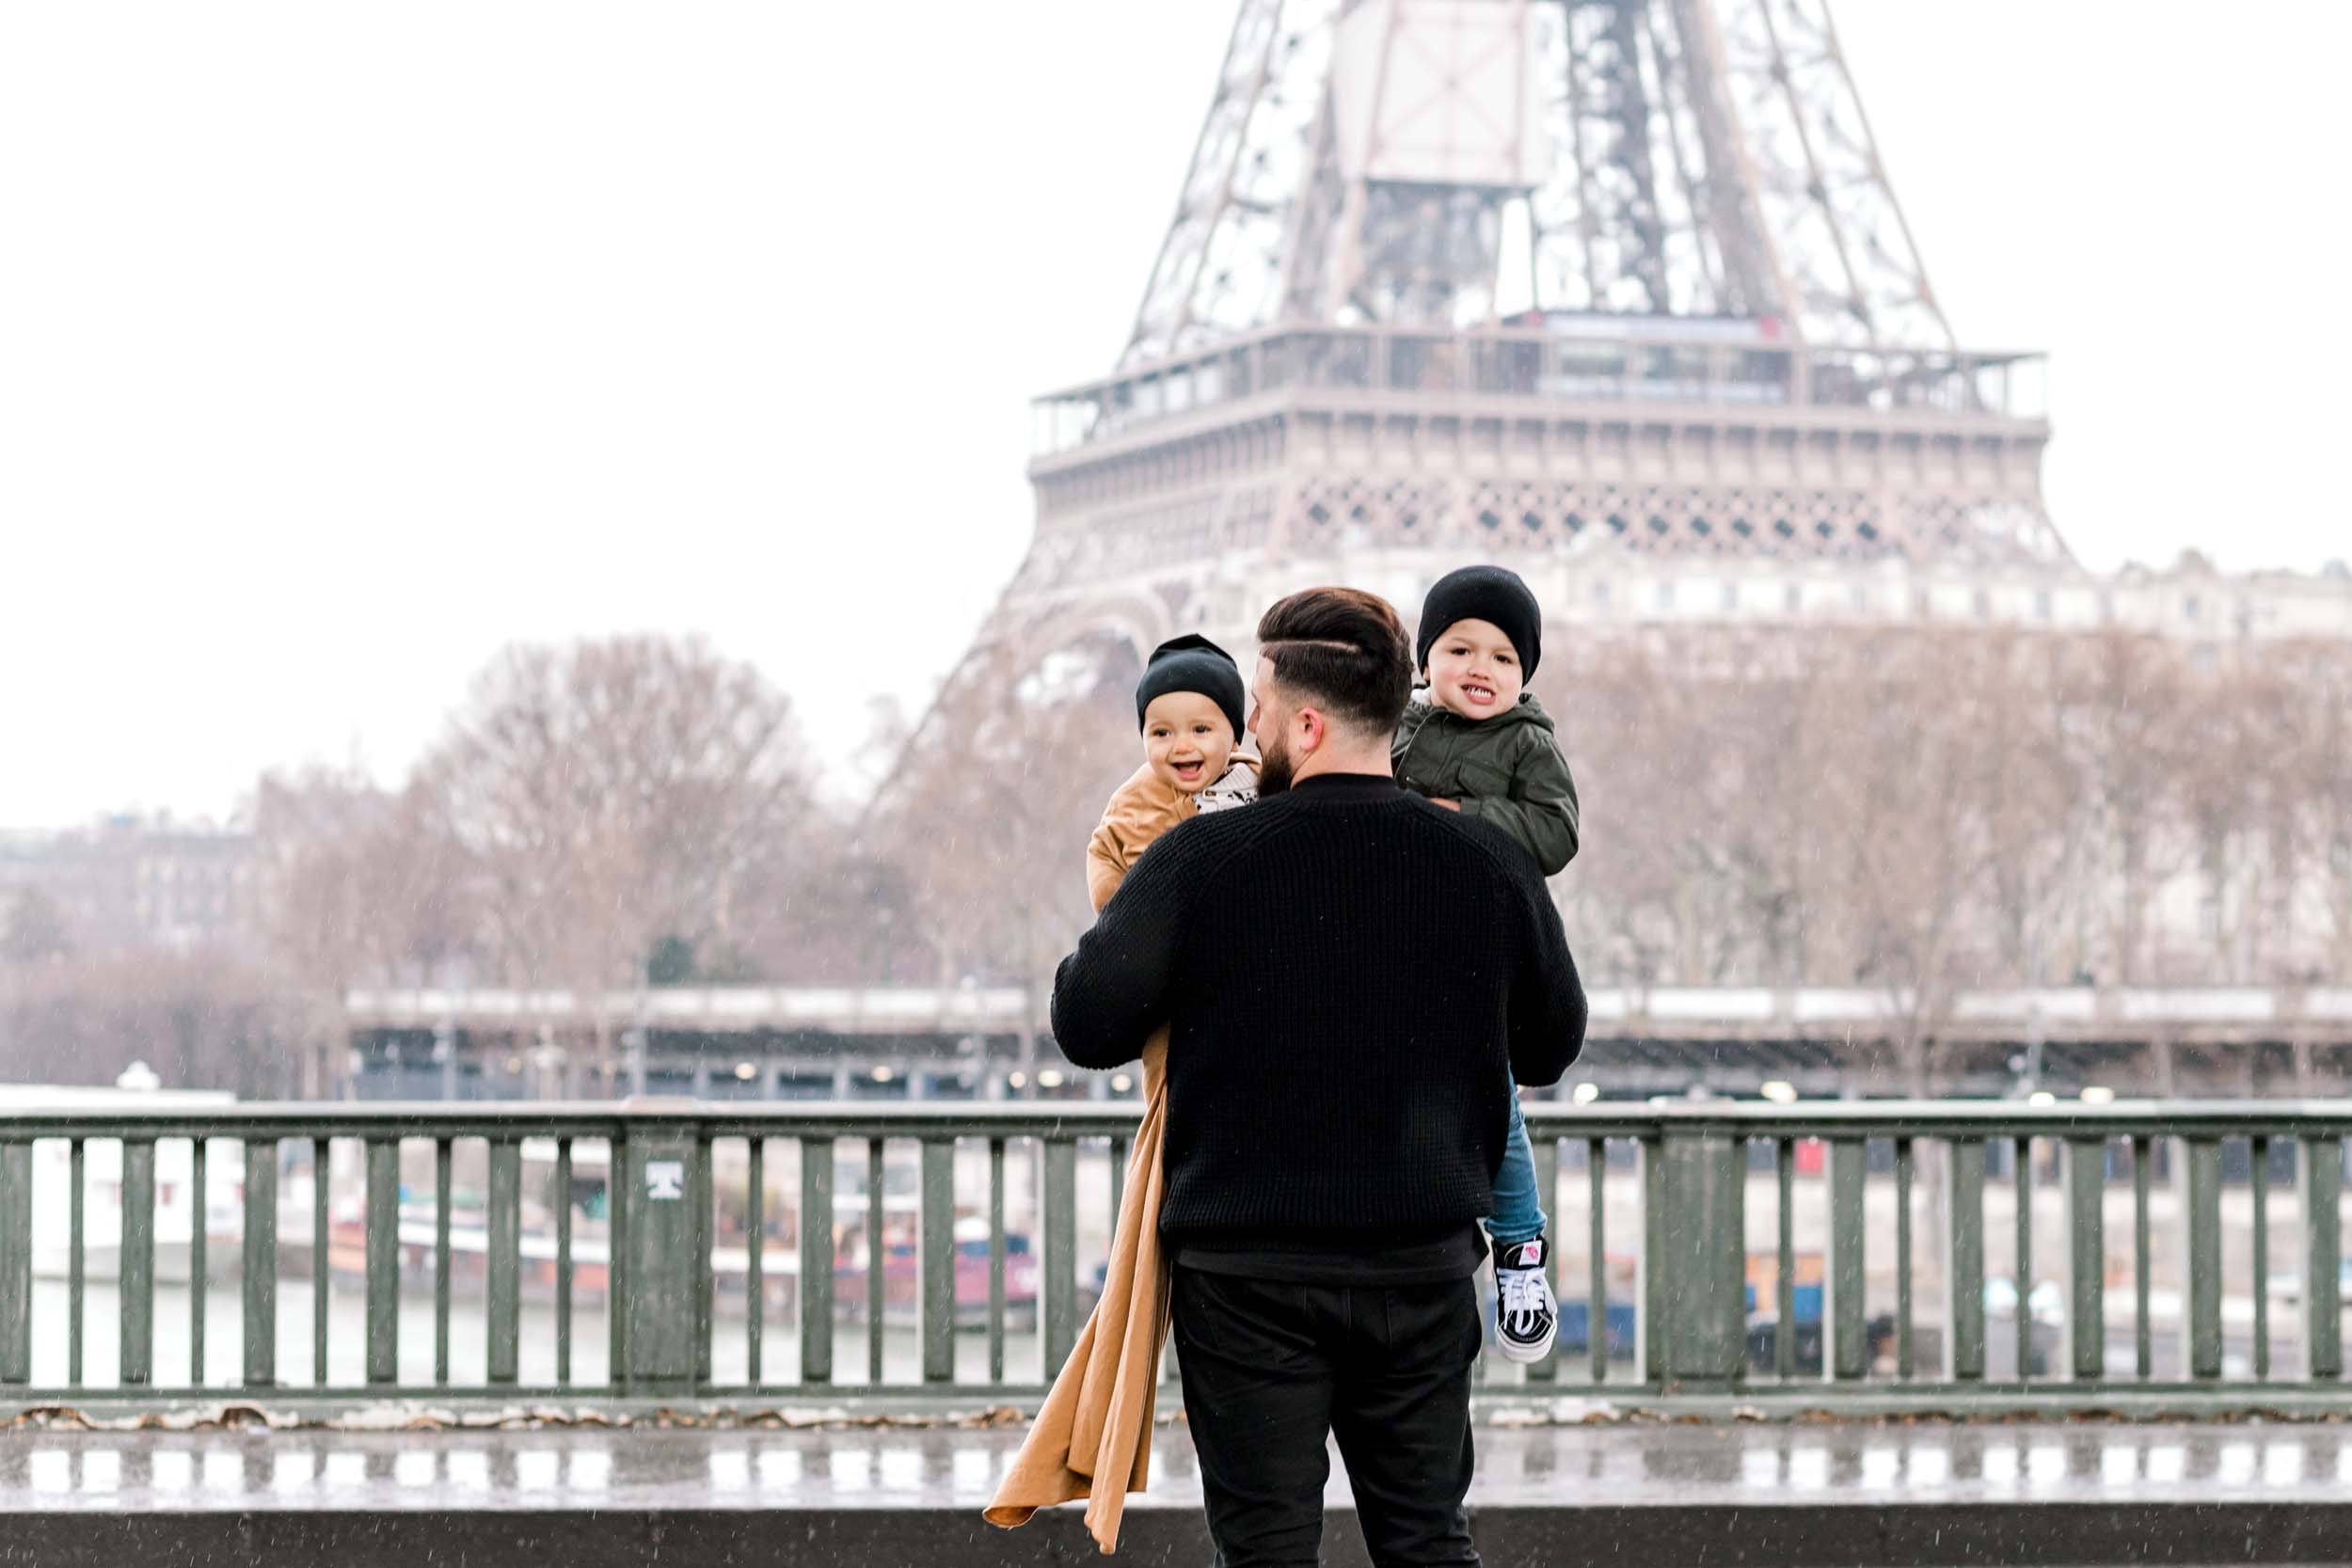 A Magical Family Getaway To Paris Blog Hire Vacation Mainly Serve As But Would Appreciate More Experienced Our Flytographer Shoot Was Such An Amazing Experience This Definitely Took The Next Level And Photos Are So Beautiful We Will